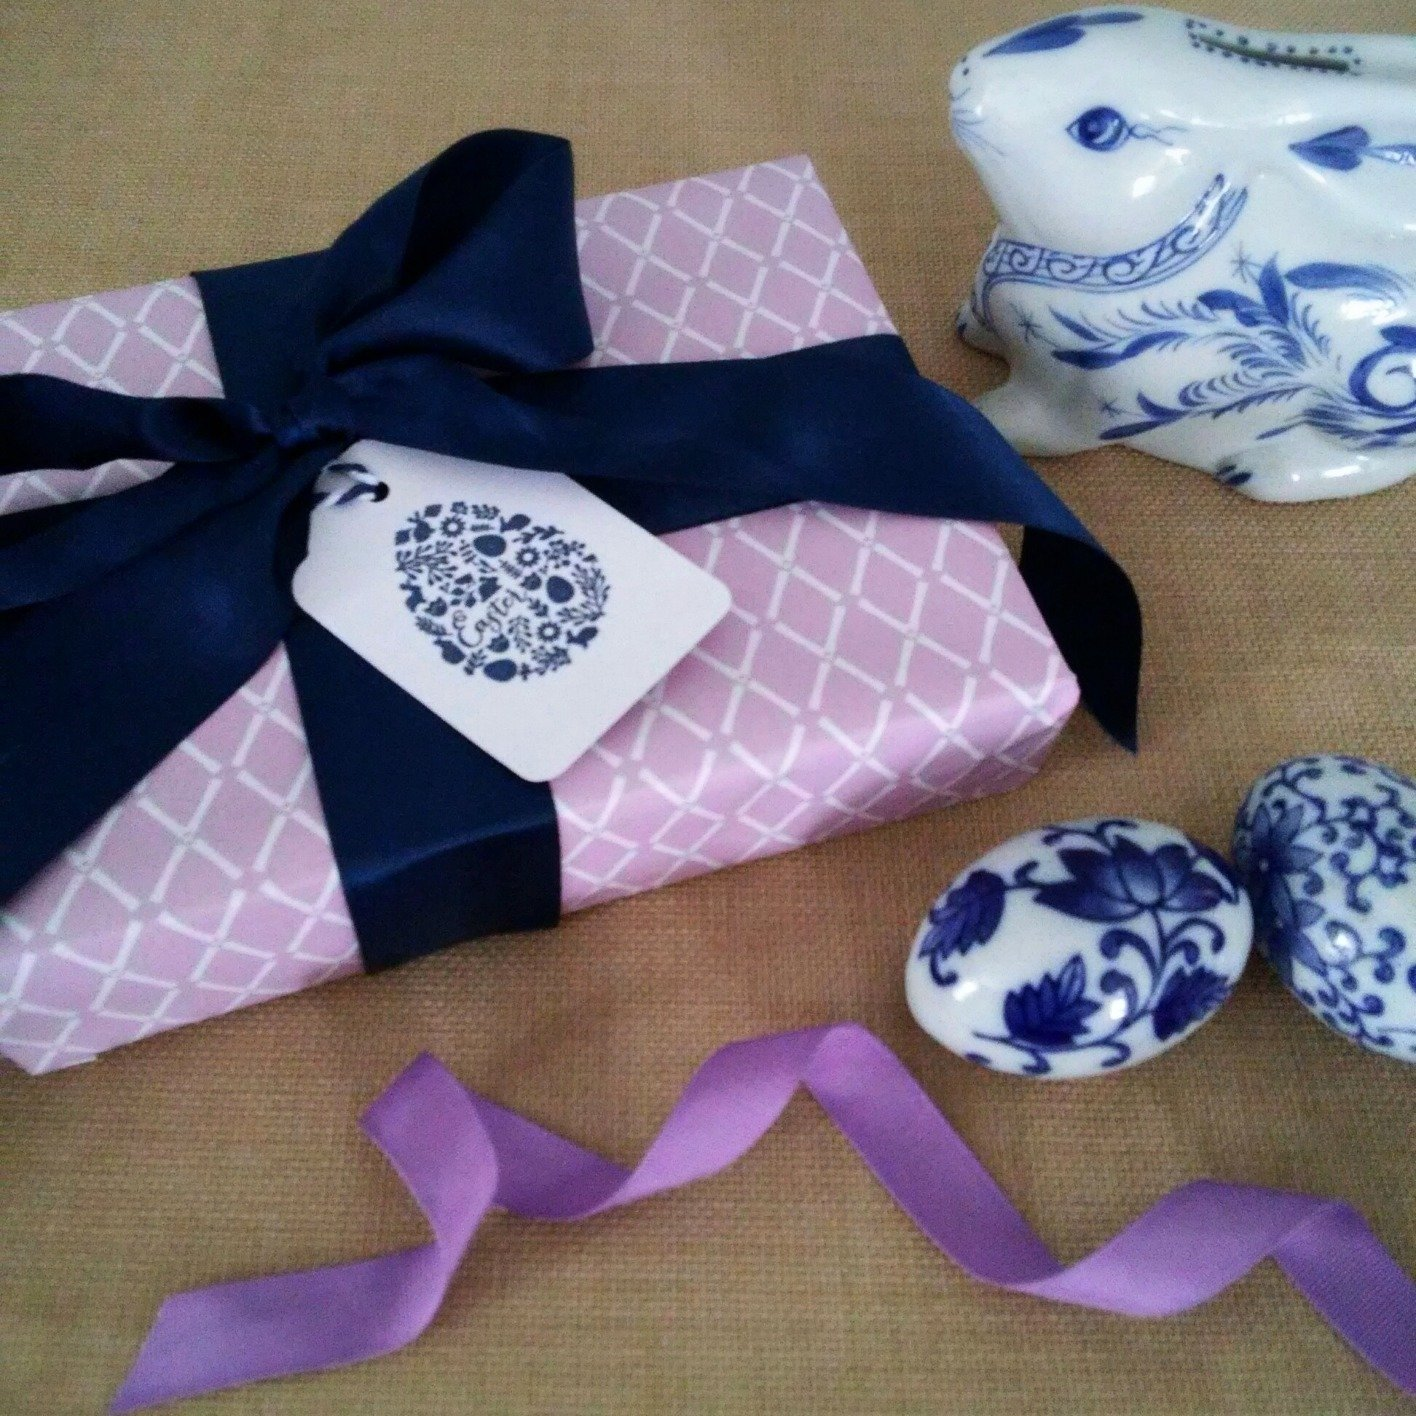 Violet Bamboo Trellis Gift Wrapping Paper by Letterworth